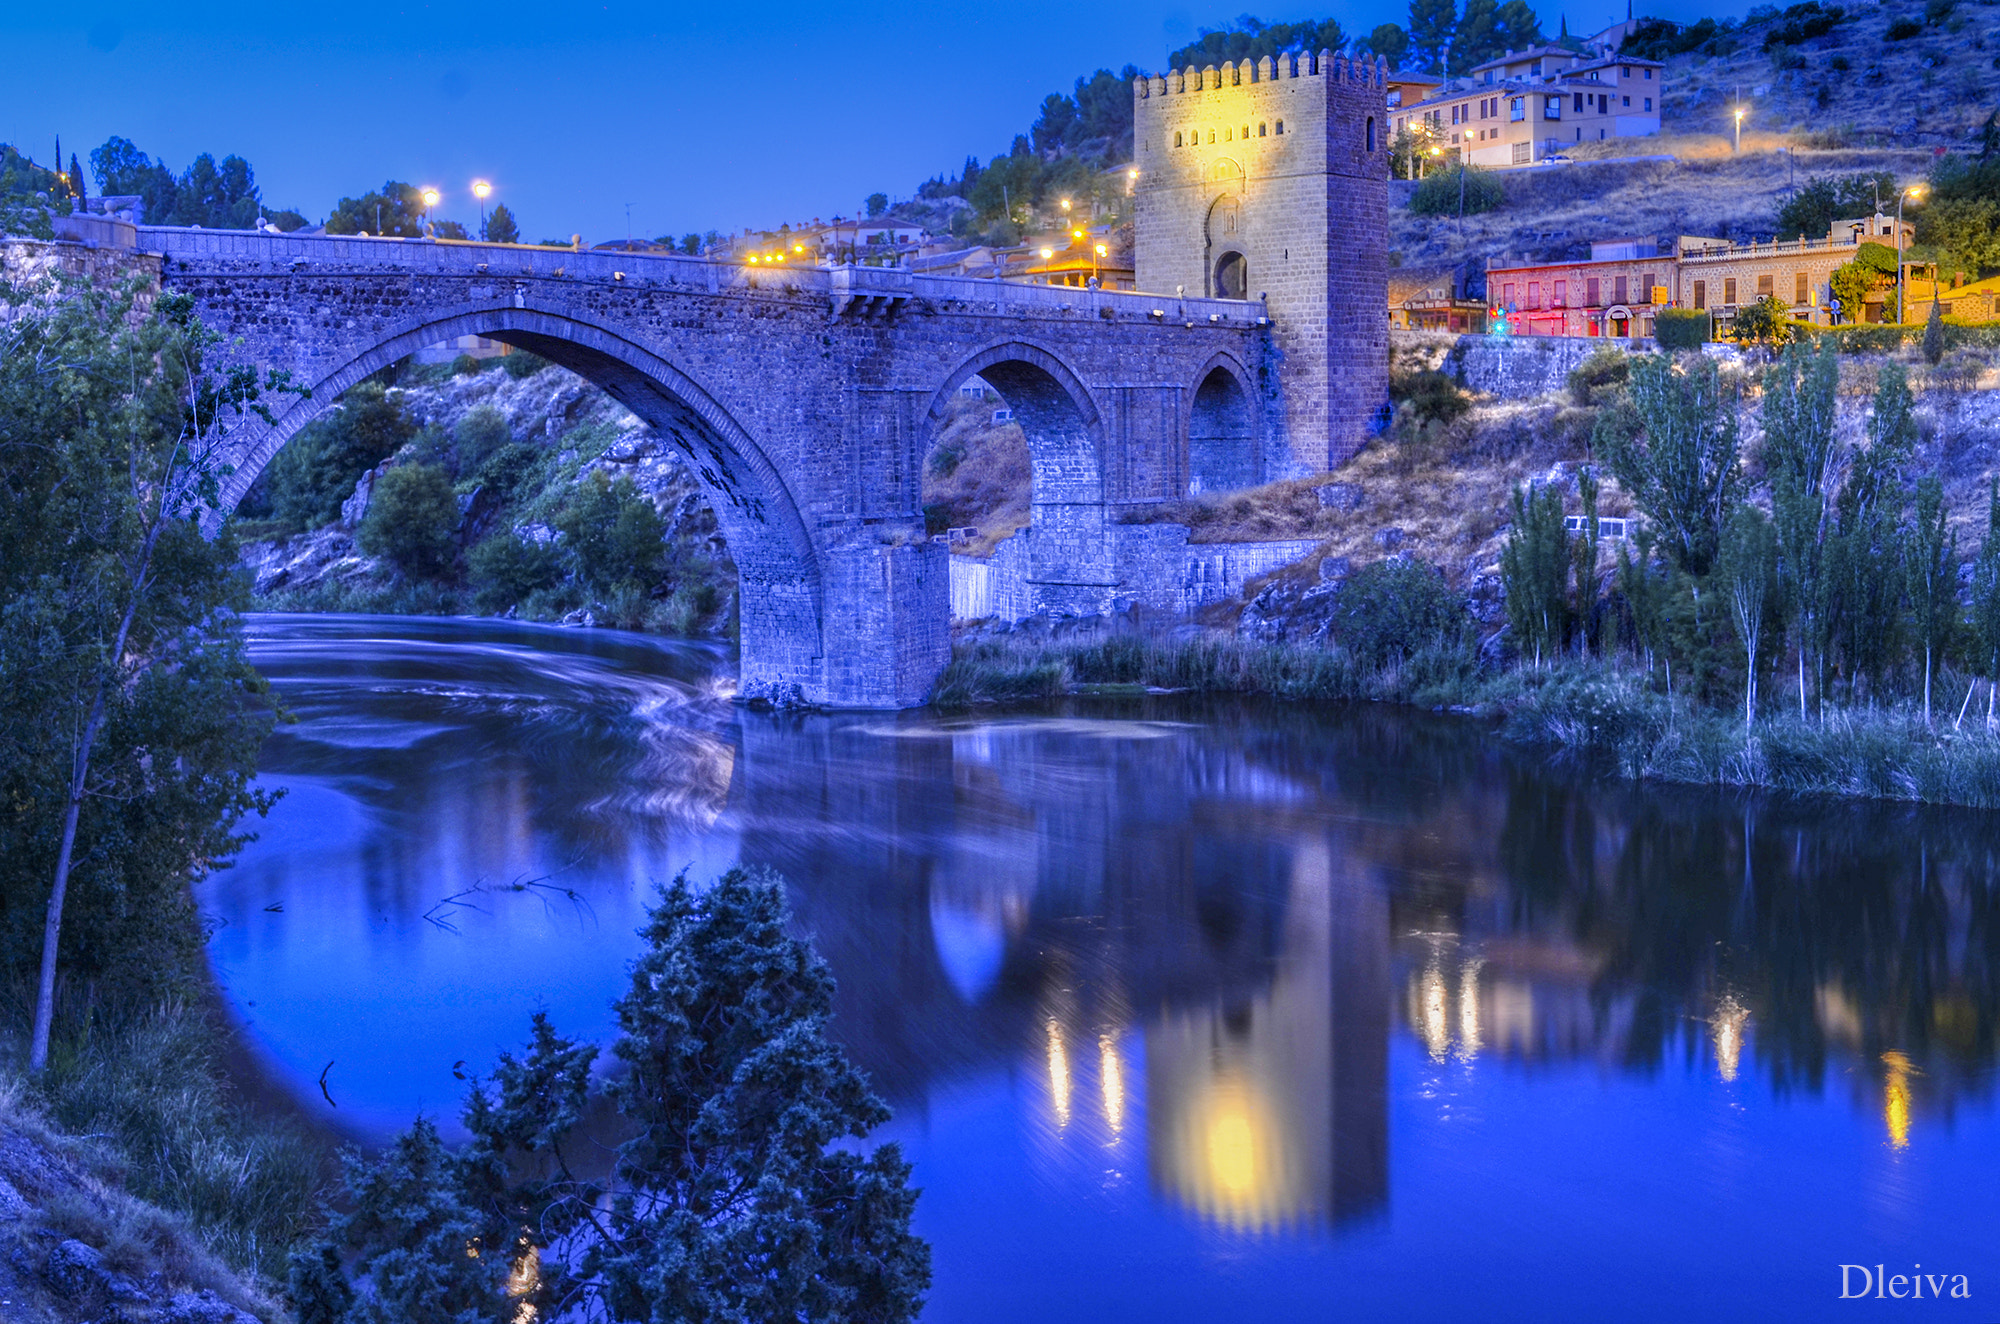 Photograph Toledo, San Martín Bridge (Spain) by Domingo Leiva on 500px